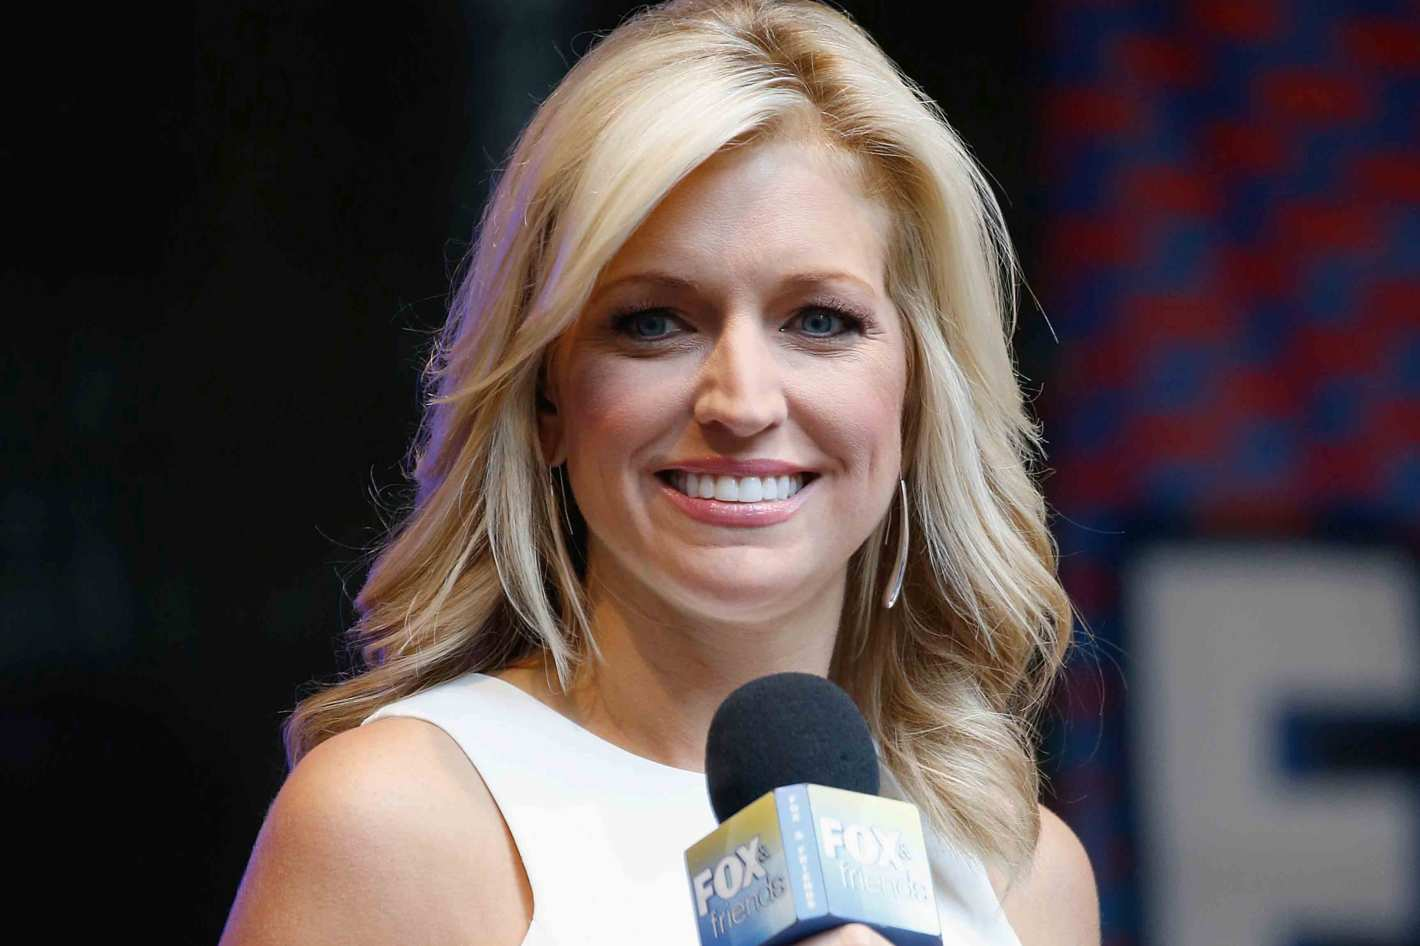 Ainsley Earhardt holding a microphone